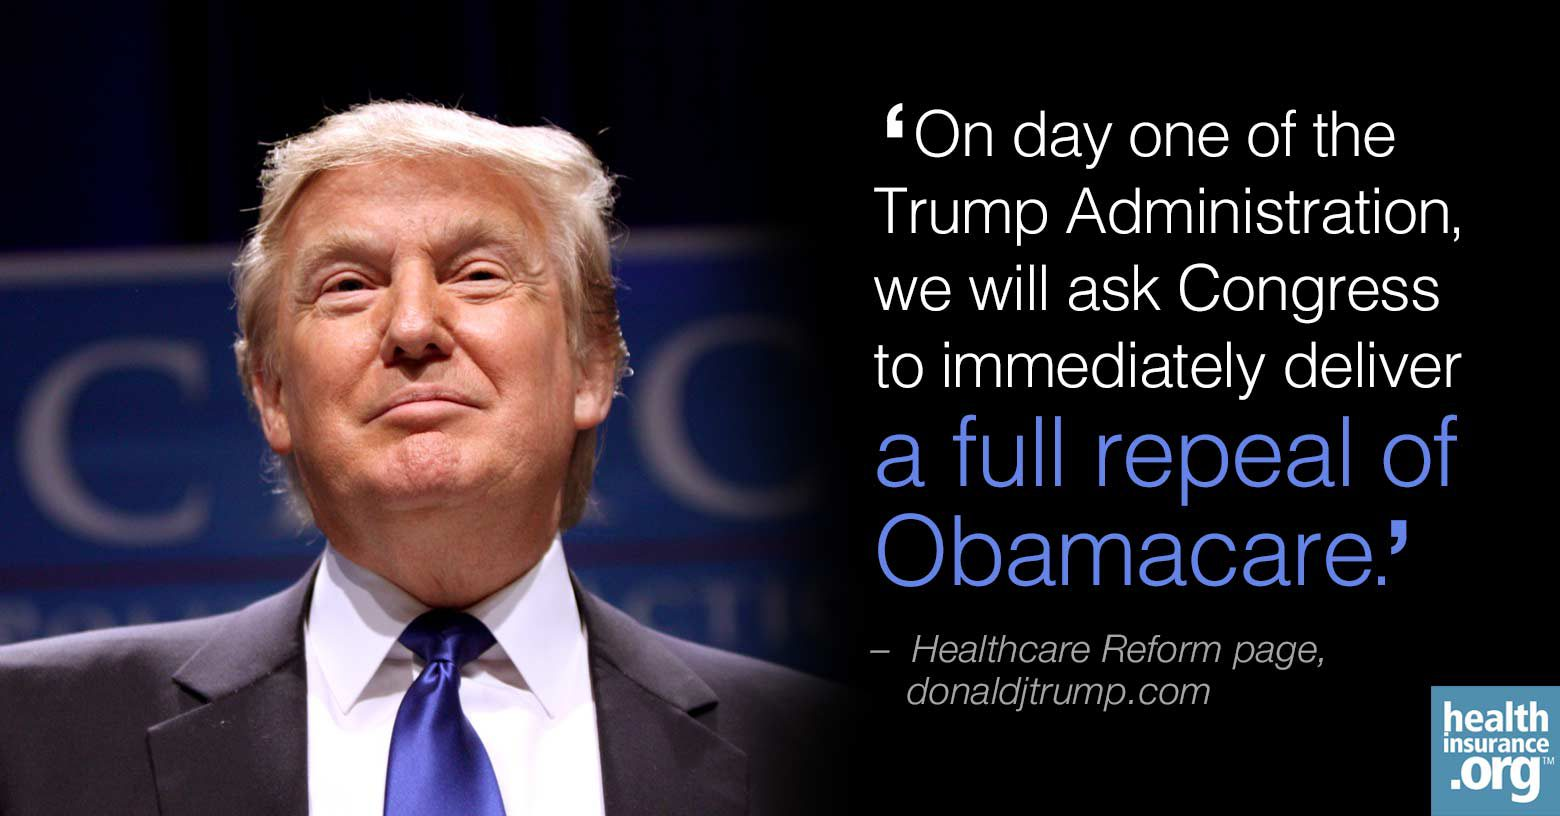 Donald Trump rechaza el Obamacare. Foto: Affordable health insurance